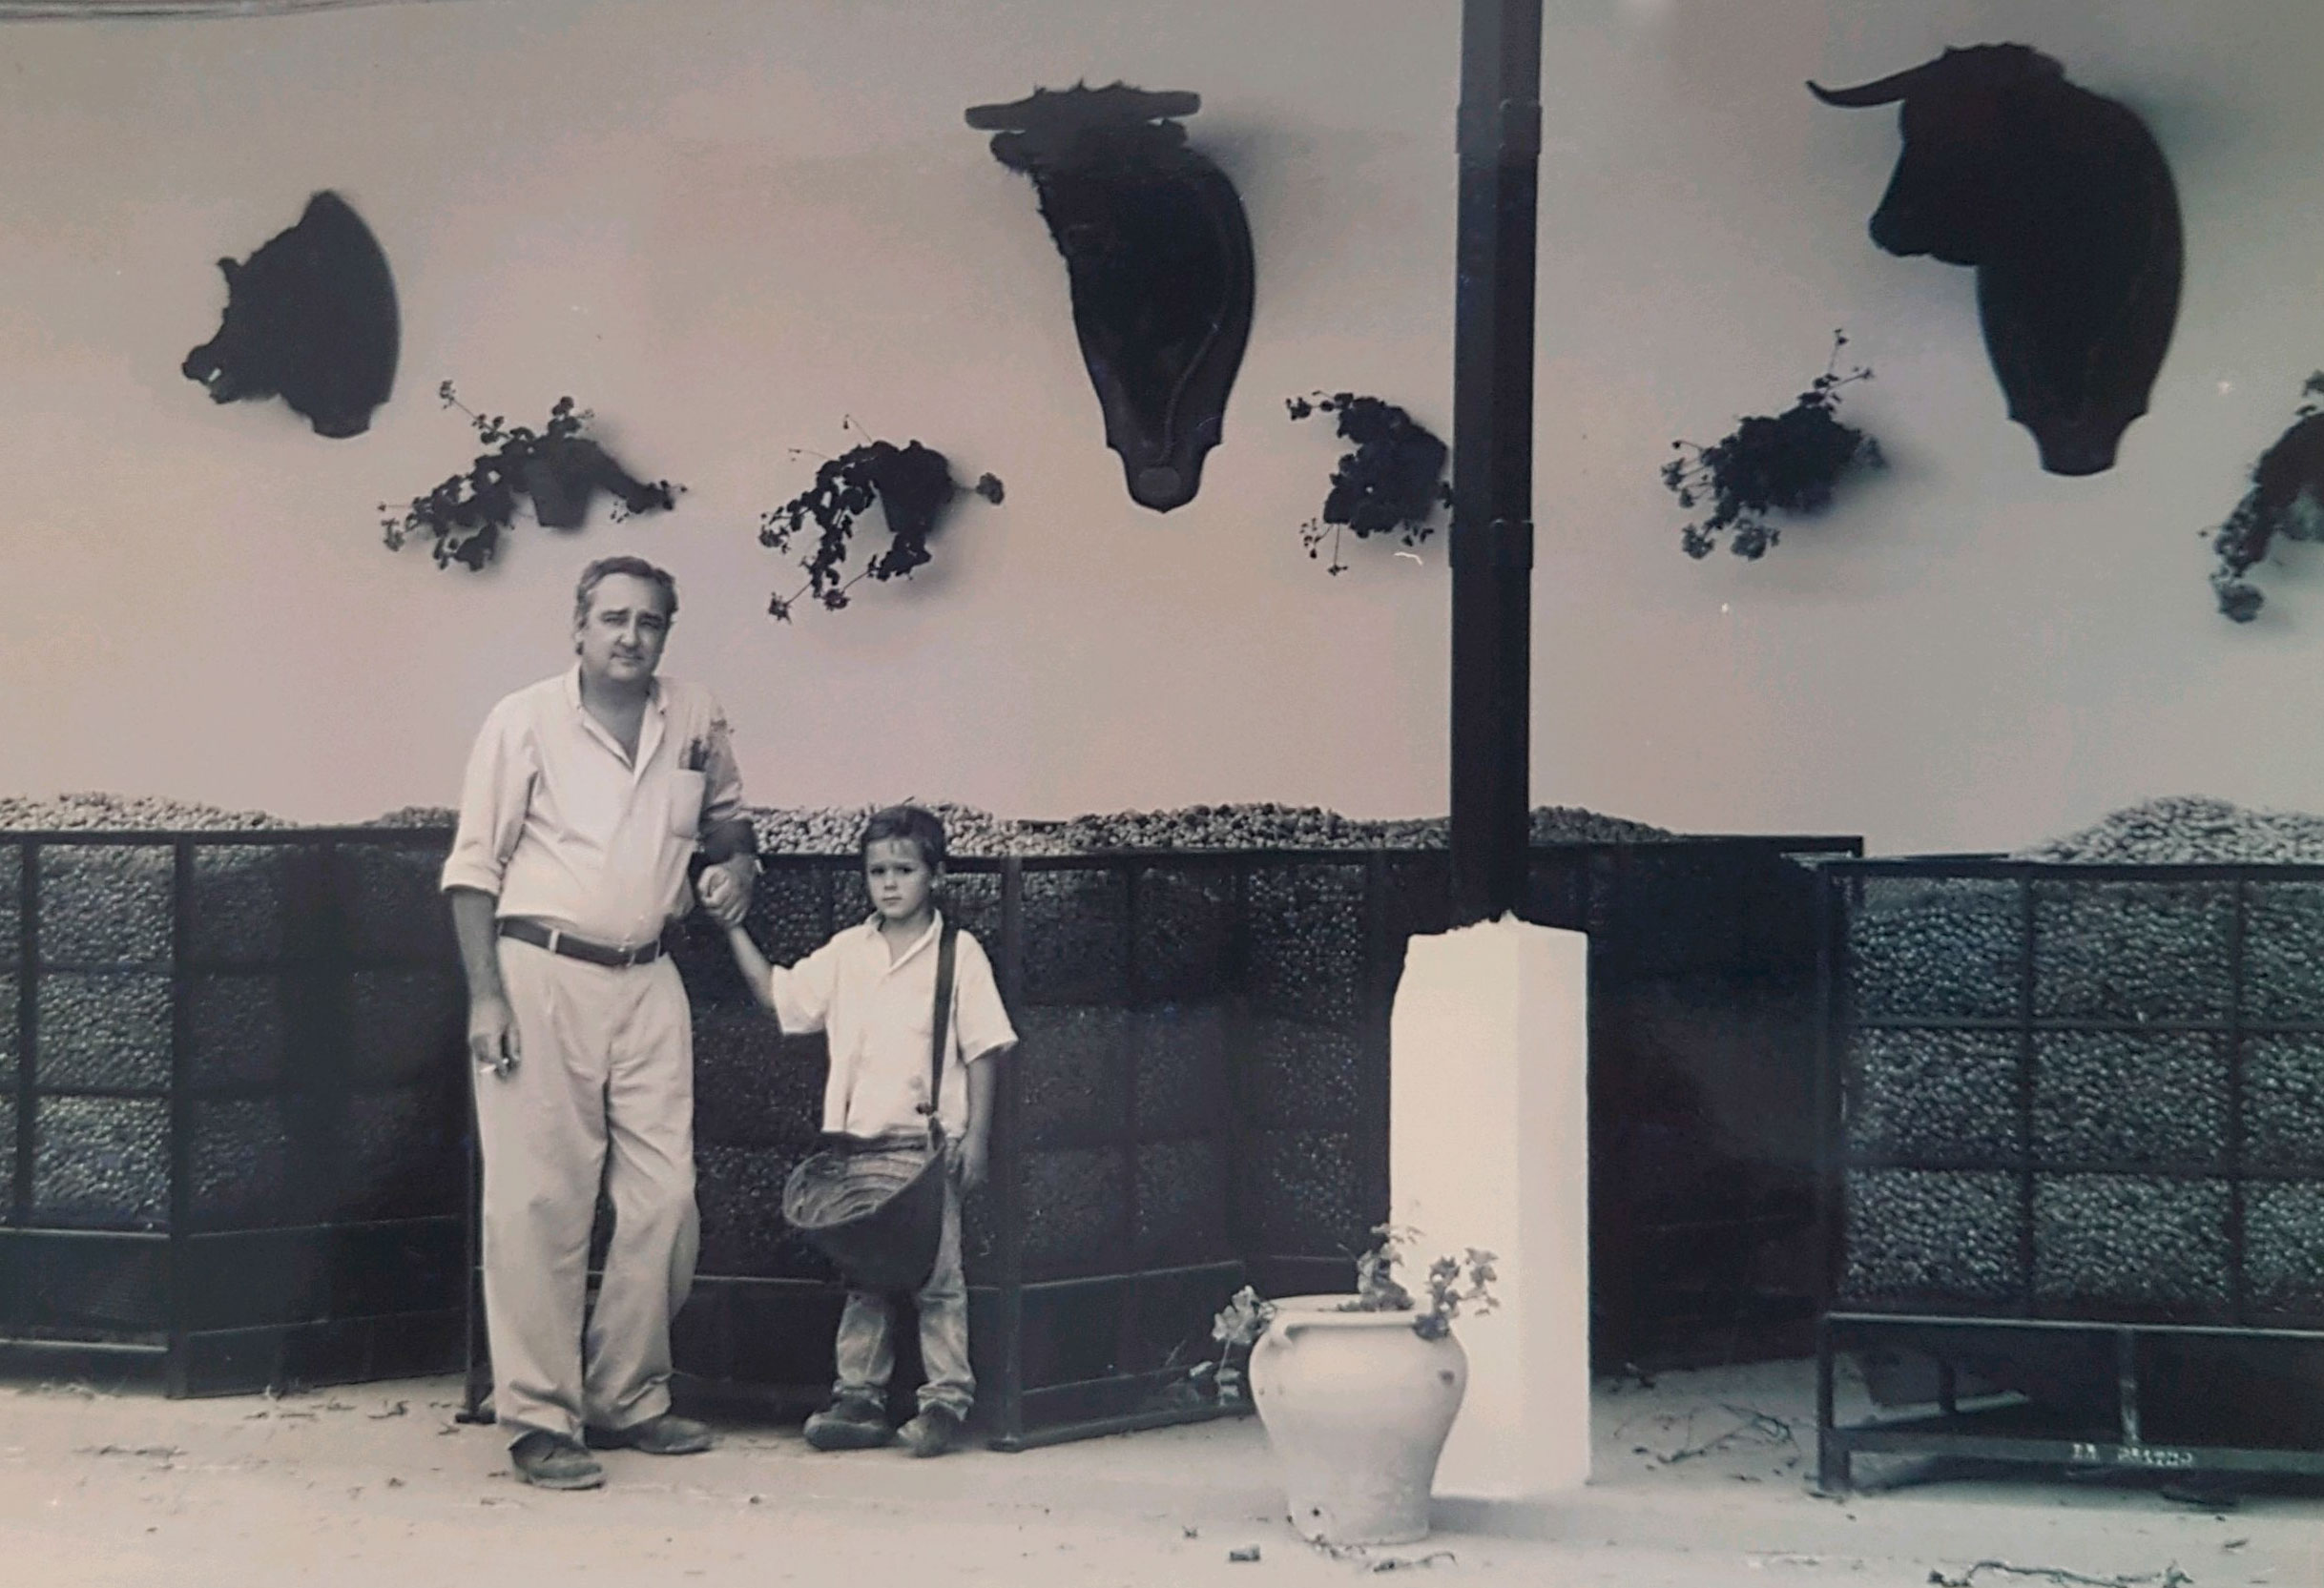 Carlos Núñez Pol with his son Carlos in 1999, in the agricultural exploitation.